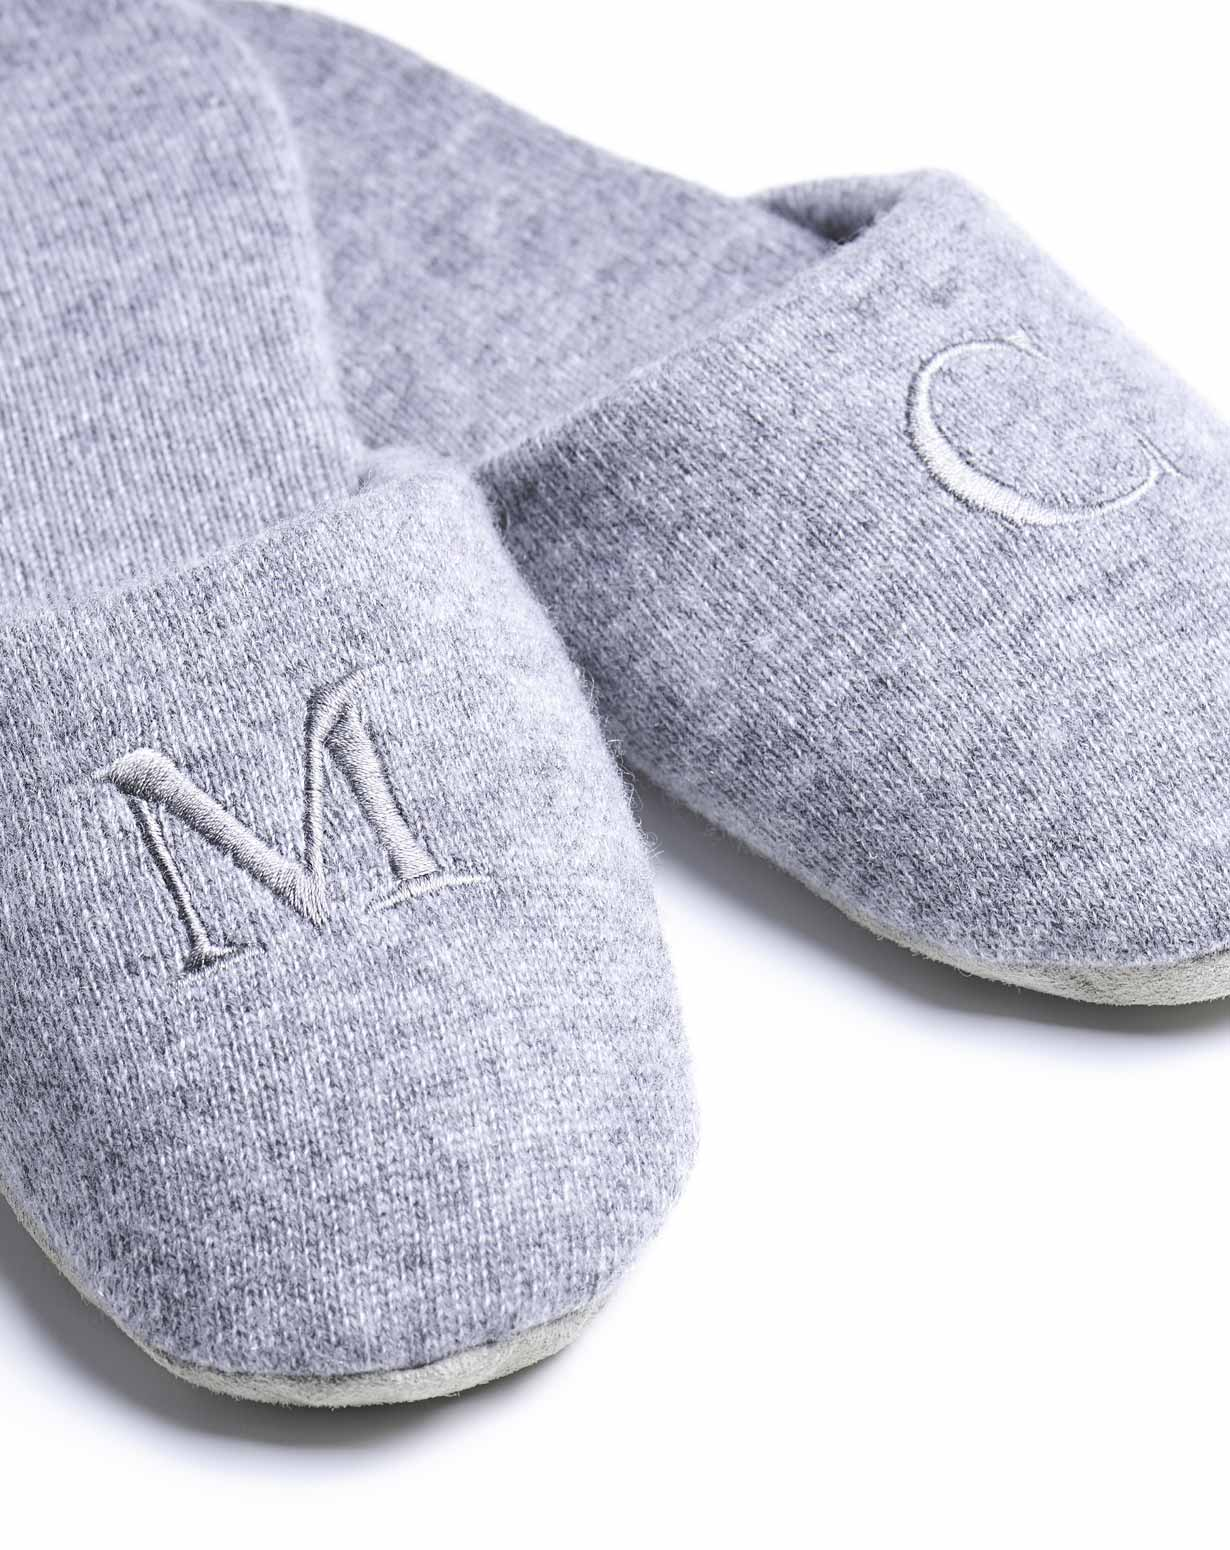 Details Shipping Returns Reviews 0 Uni Pure Cashmere Bedroom Slippers